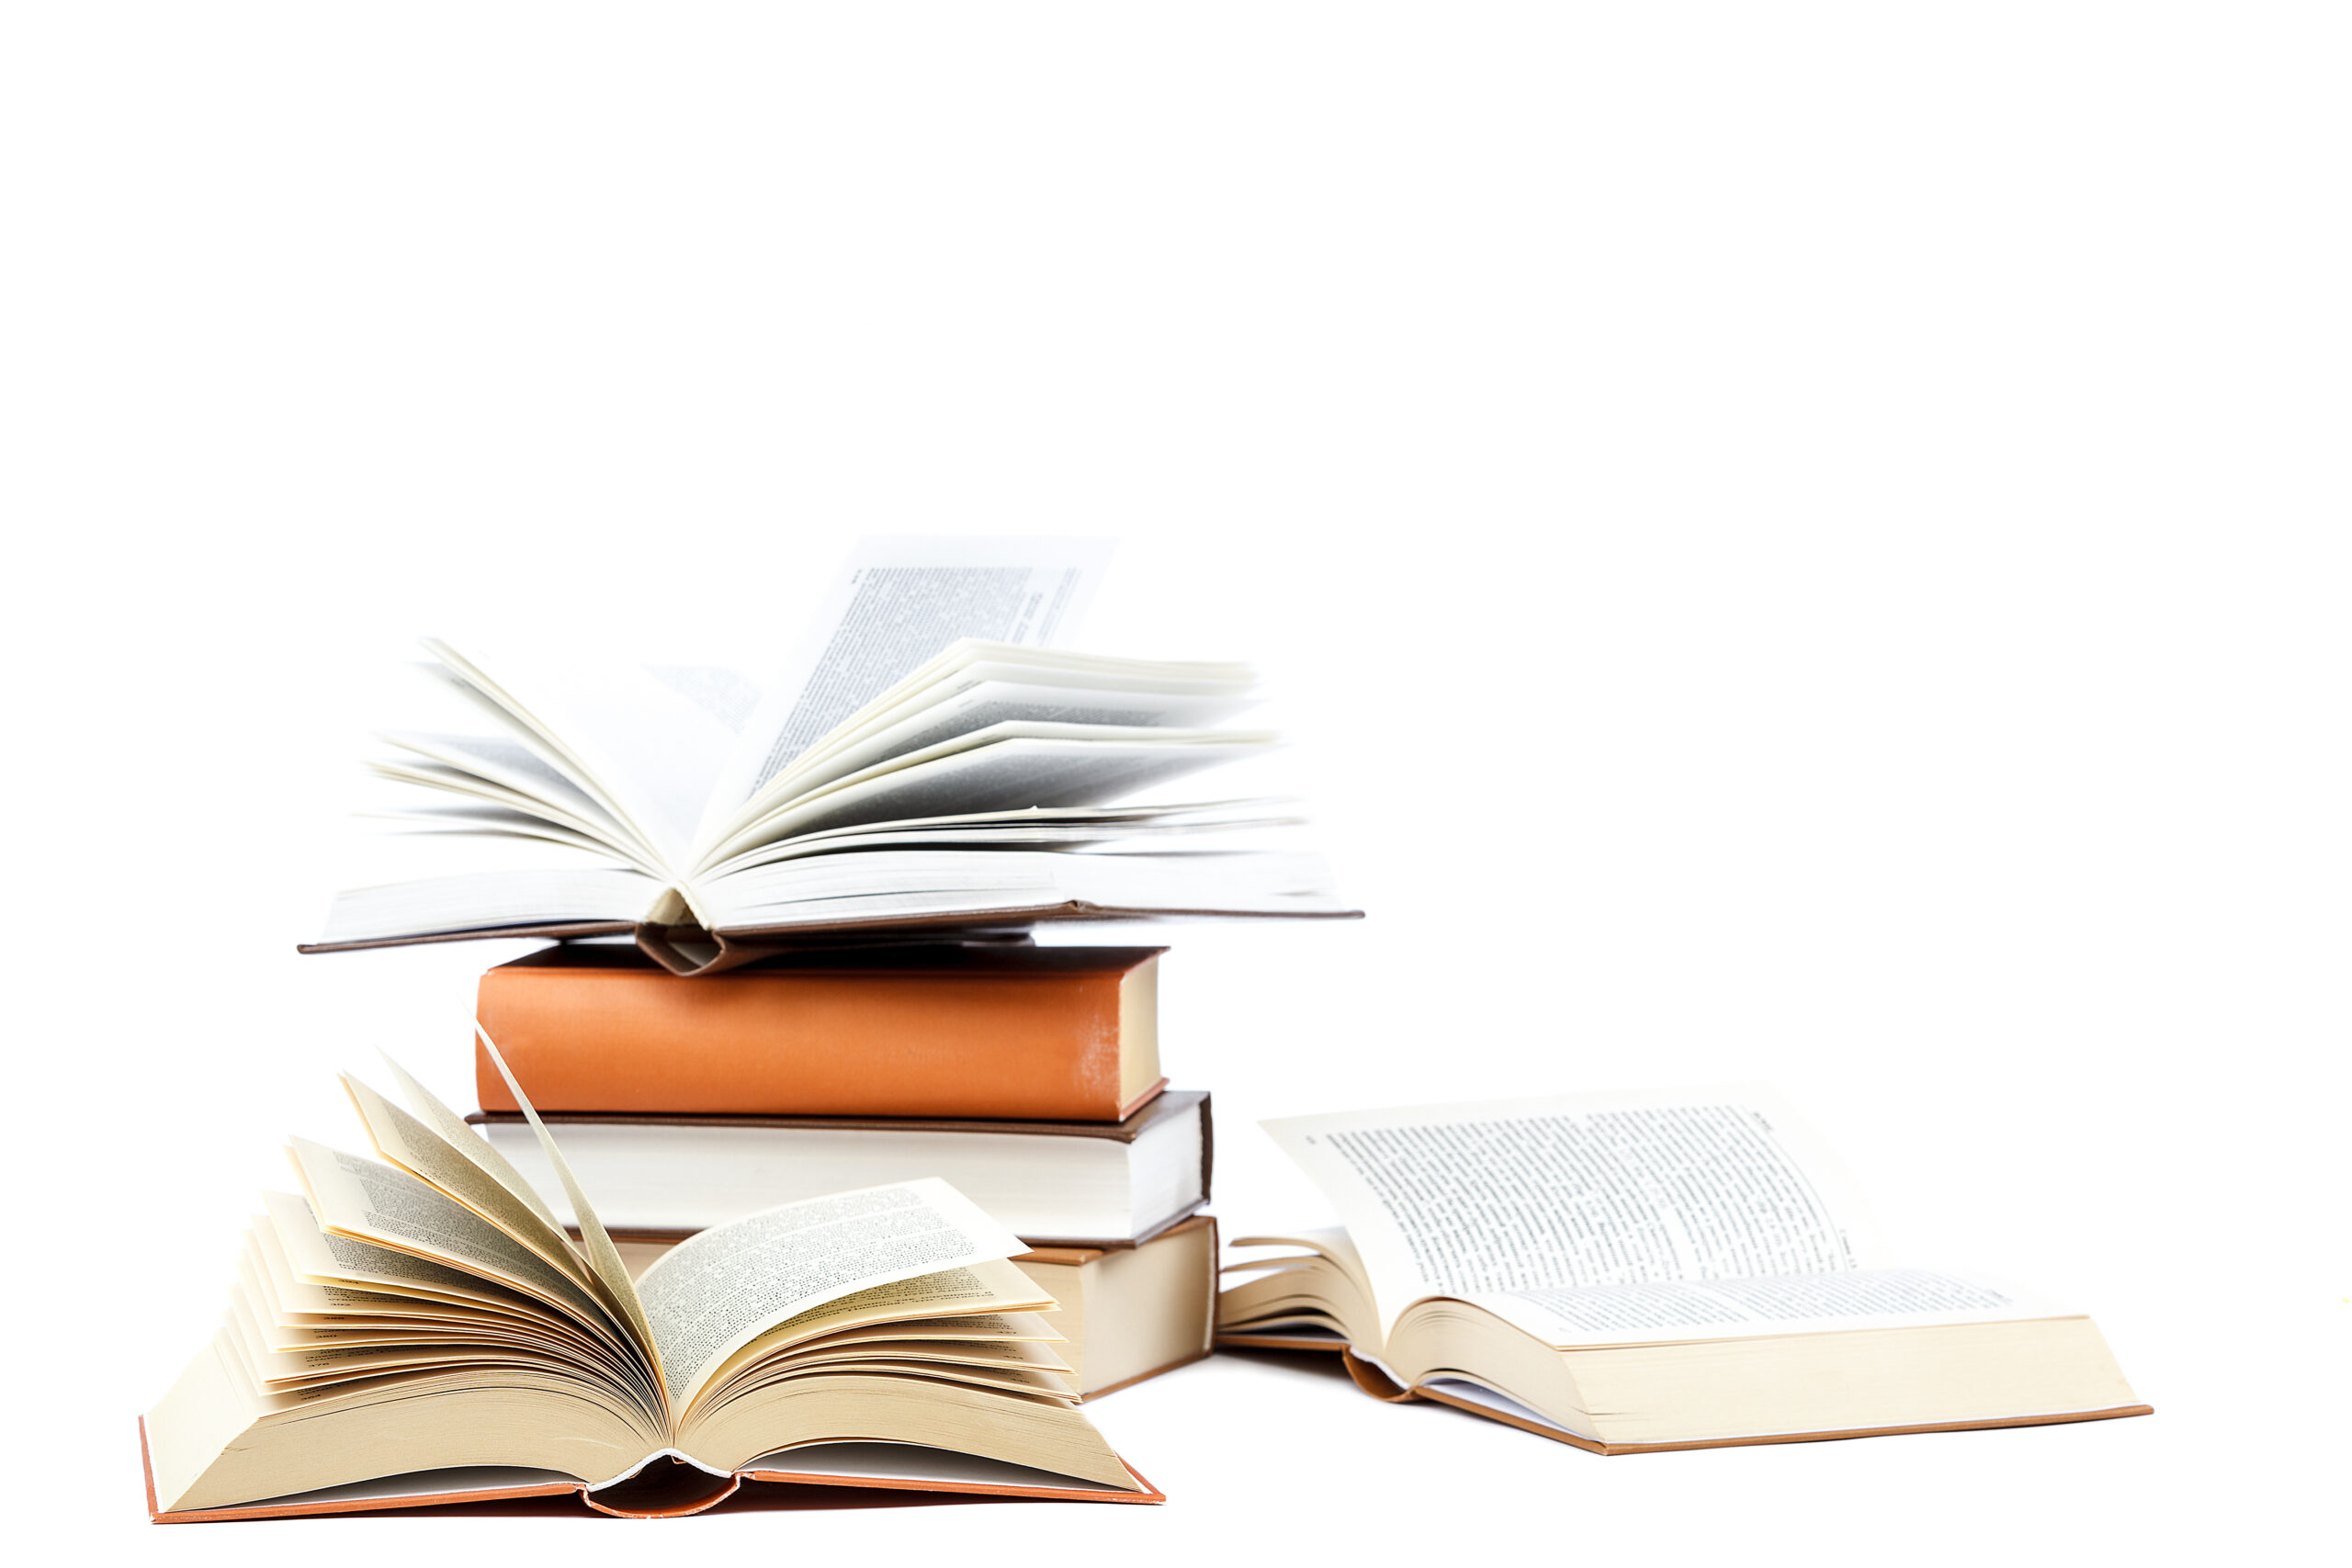 Books In A Stack On White Background.